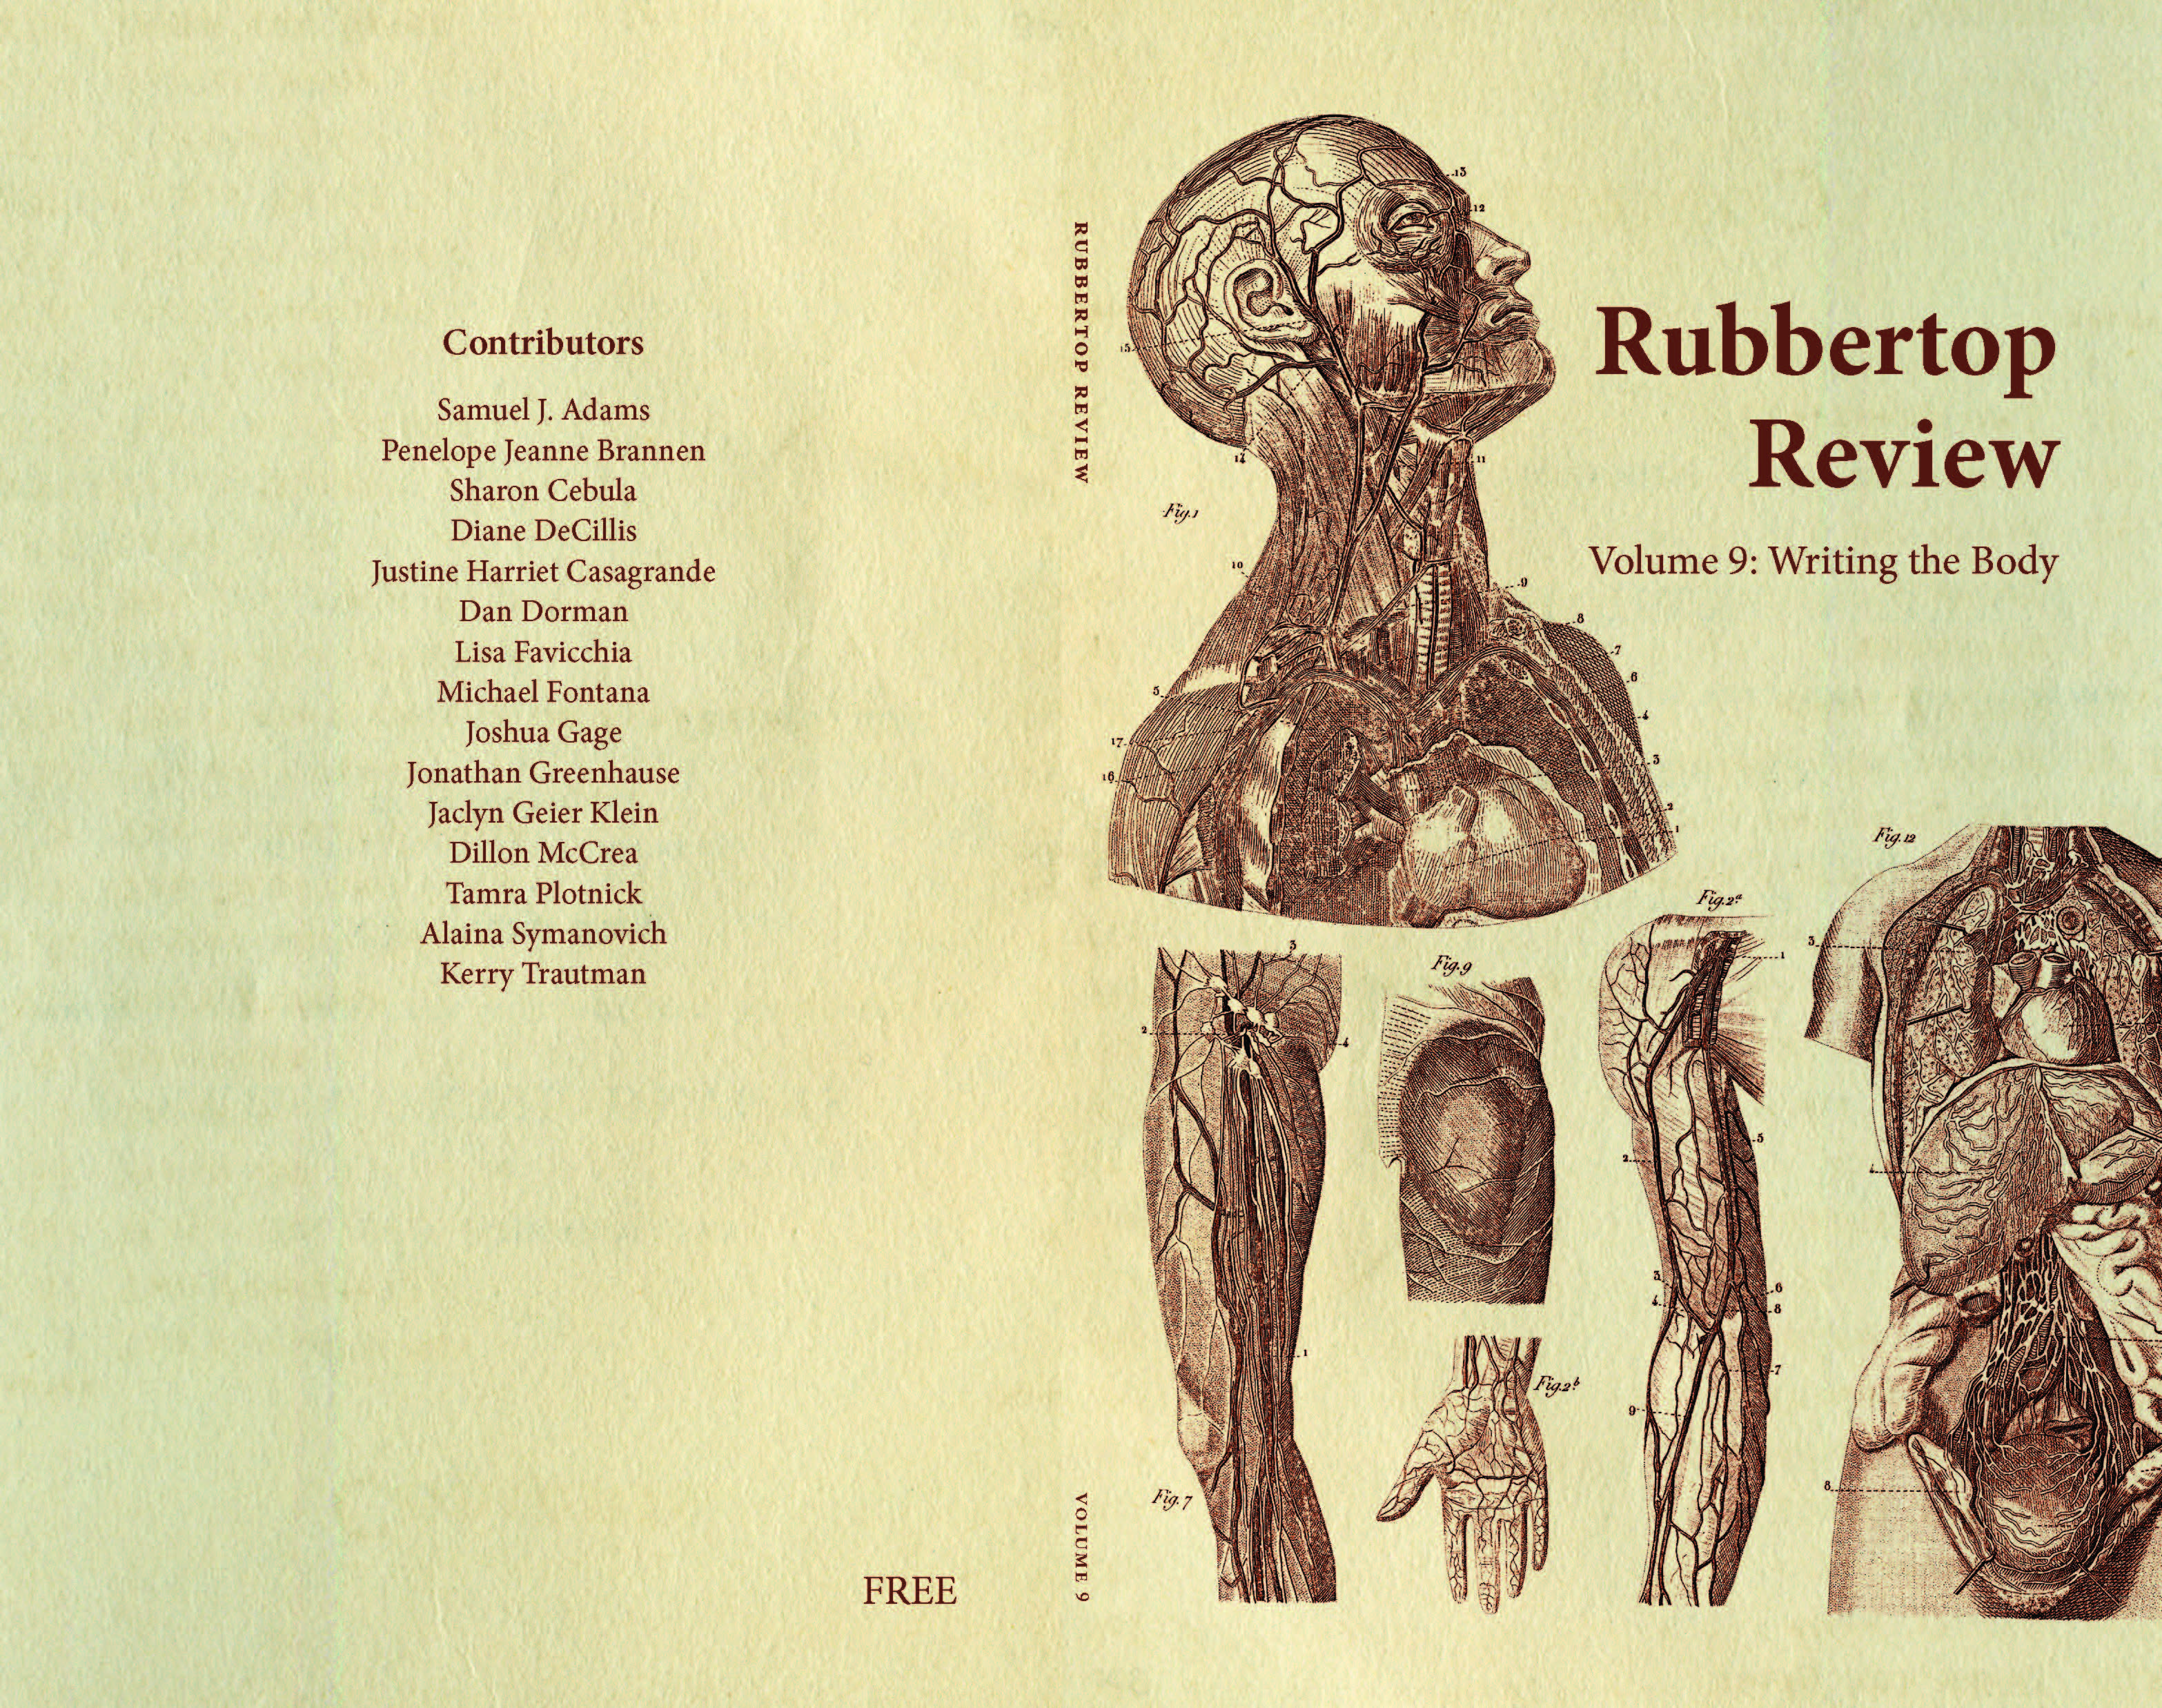 Rubbertop Review vol 9 cover